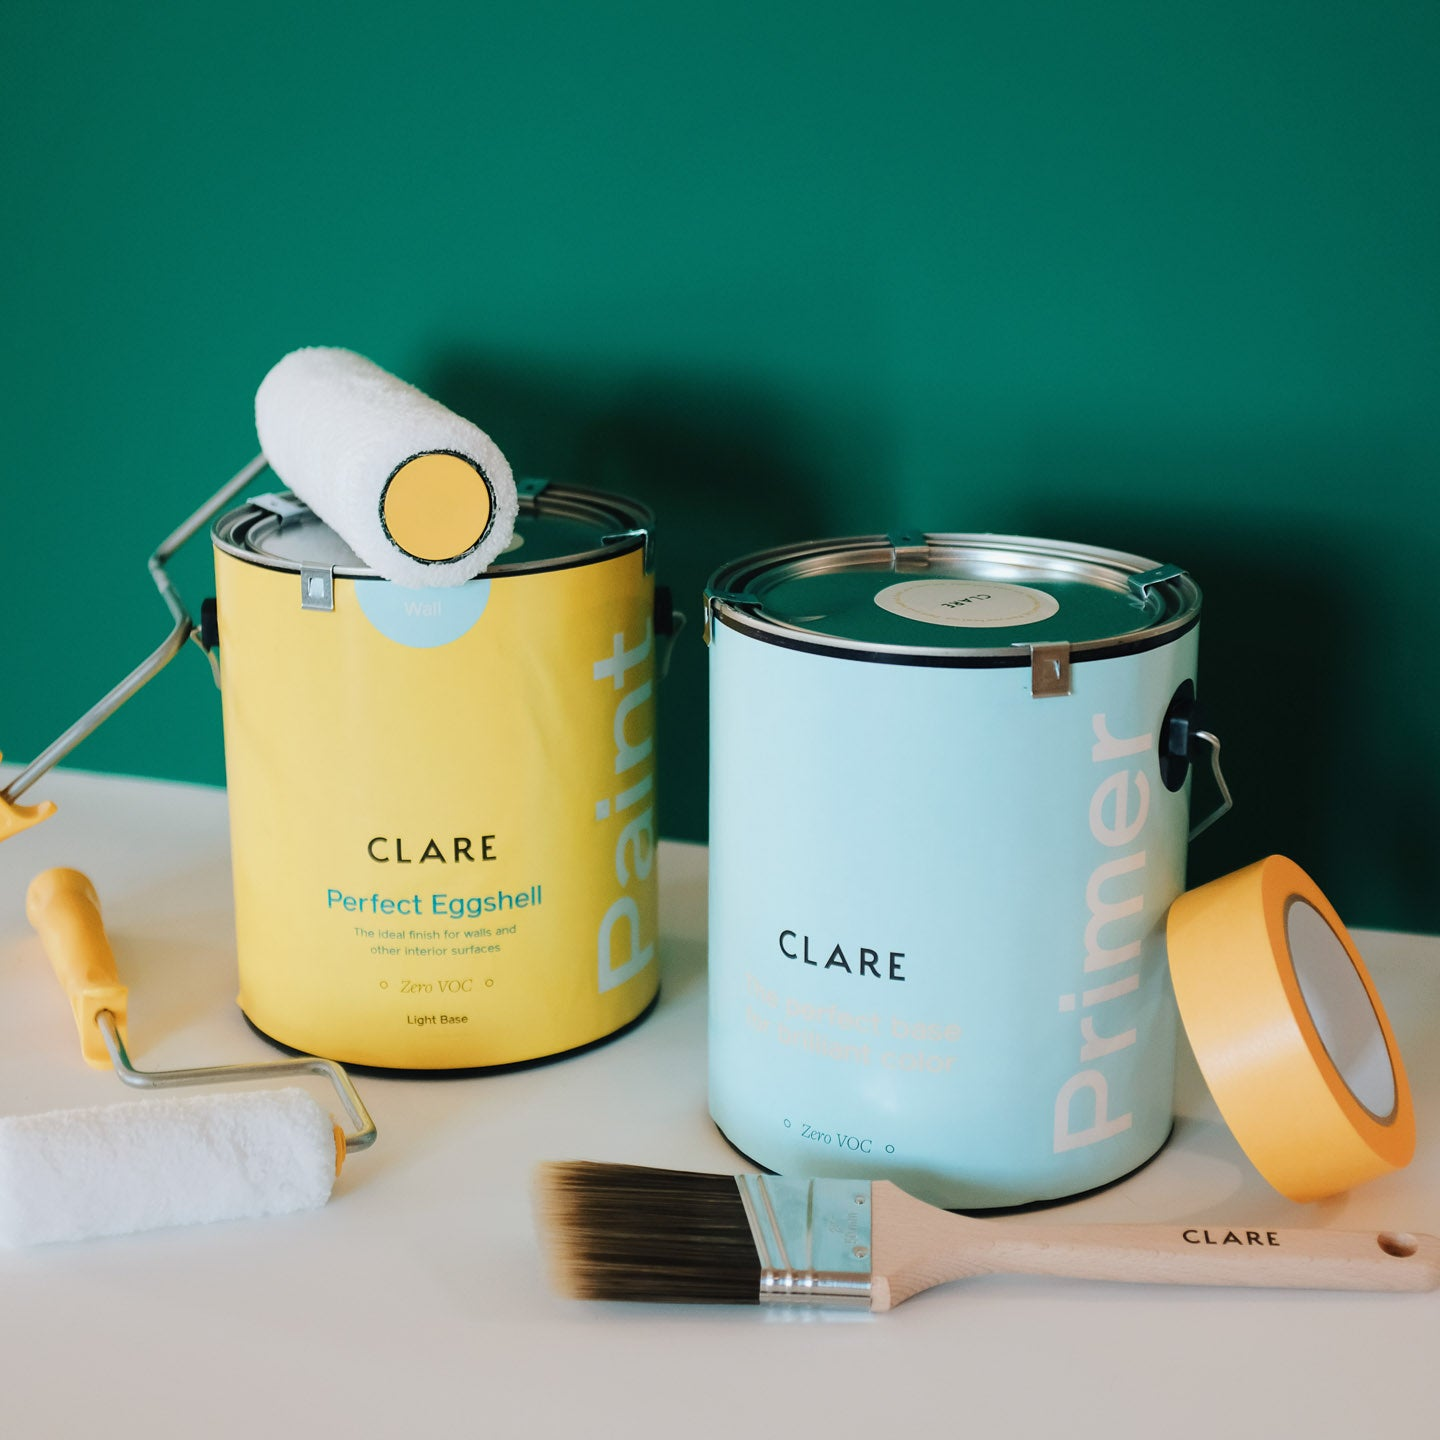 Order paint online with our ultimate guide! Find your perfect paint color, learn how to order high-quality supplies, how much paint you'll need, and what to expect with delivery!